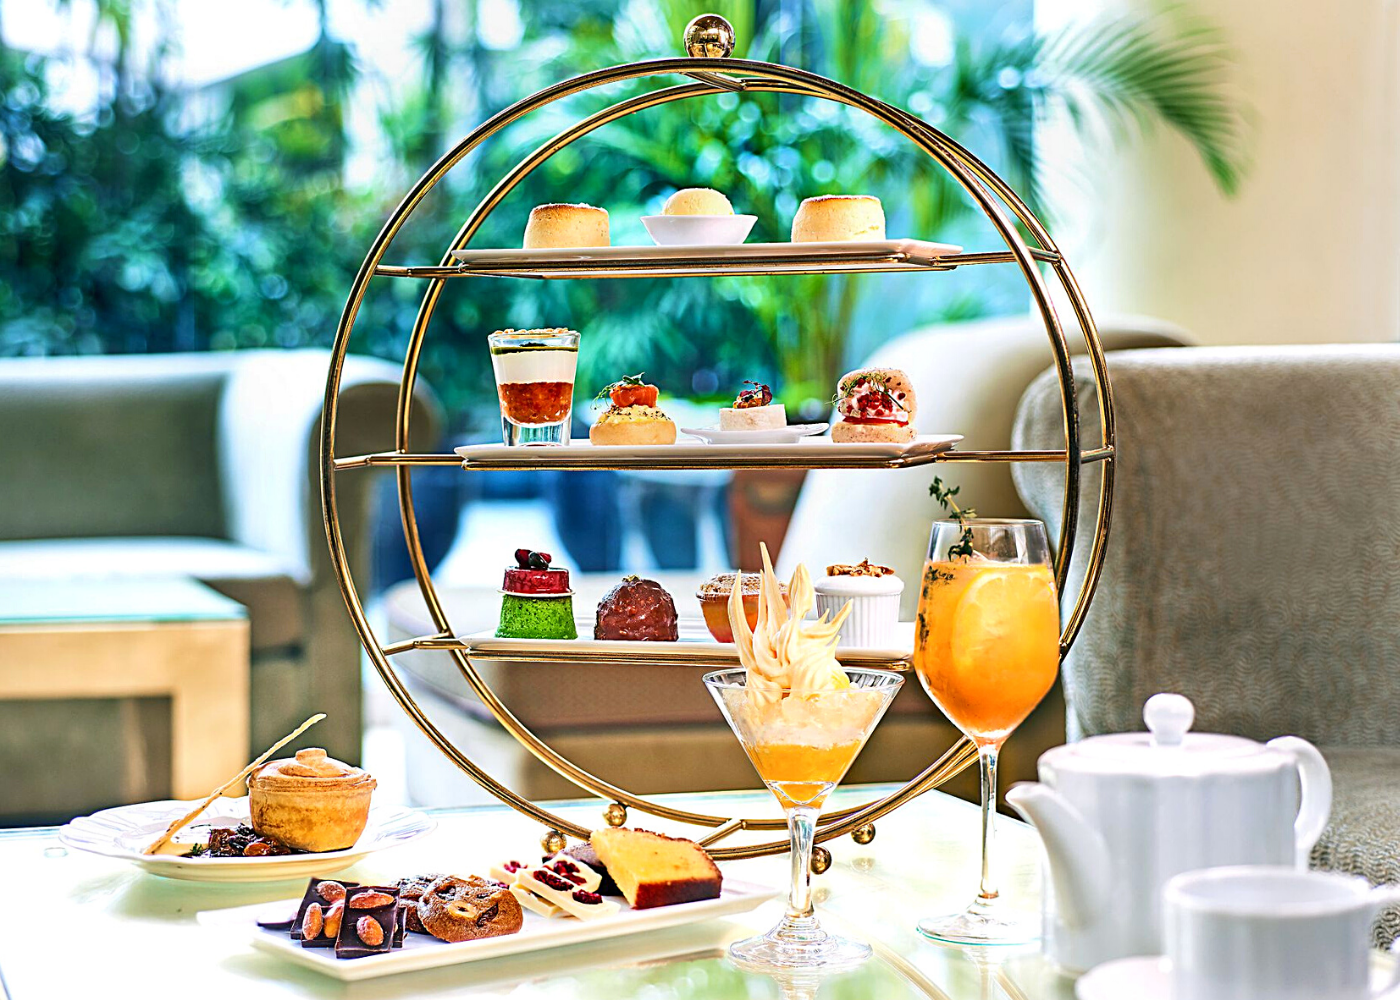 Afternoon tea at Chihuly Lounge